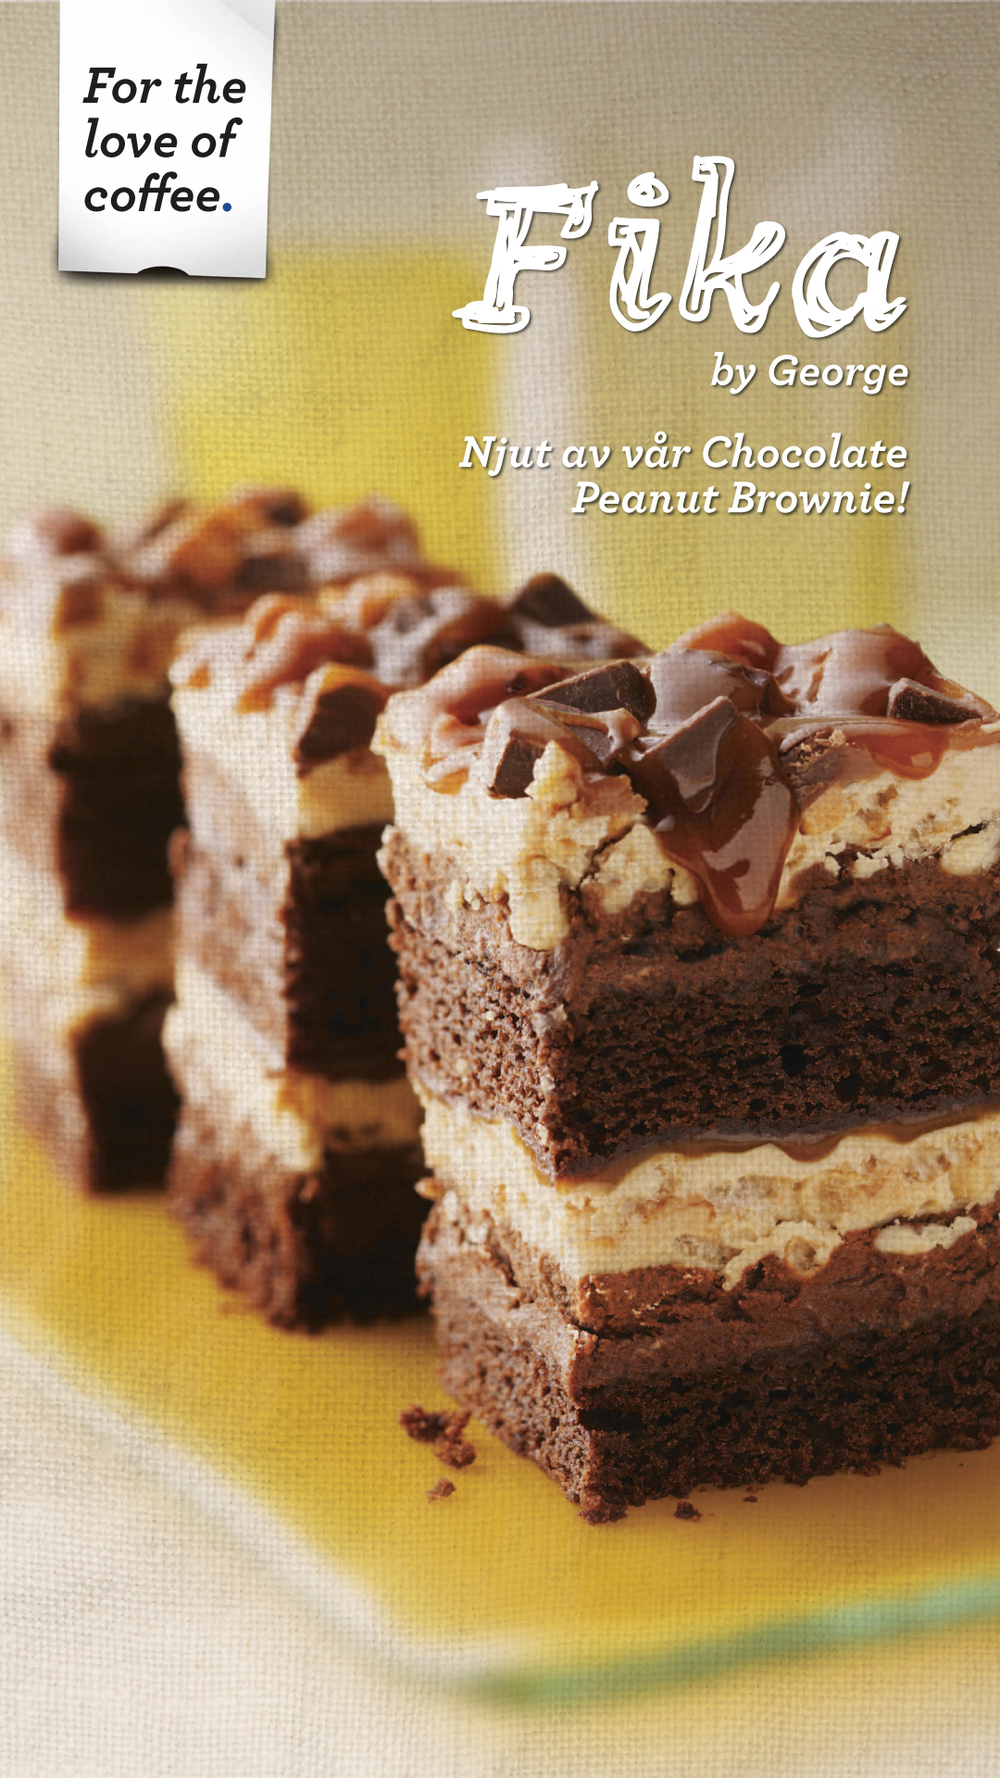 TVscreen_Brownie_1080x1920.jpg